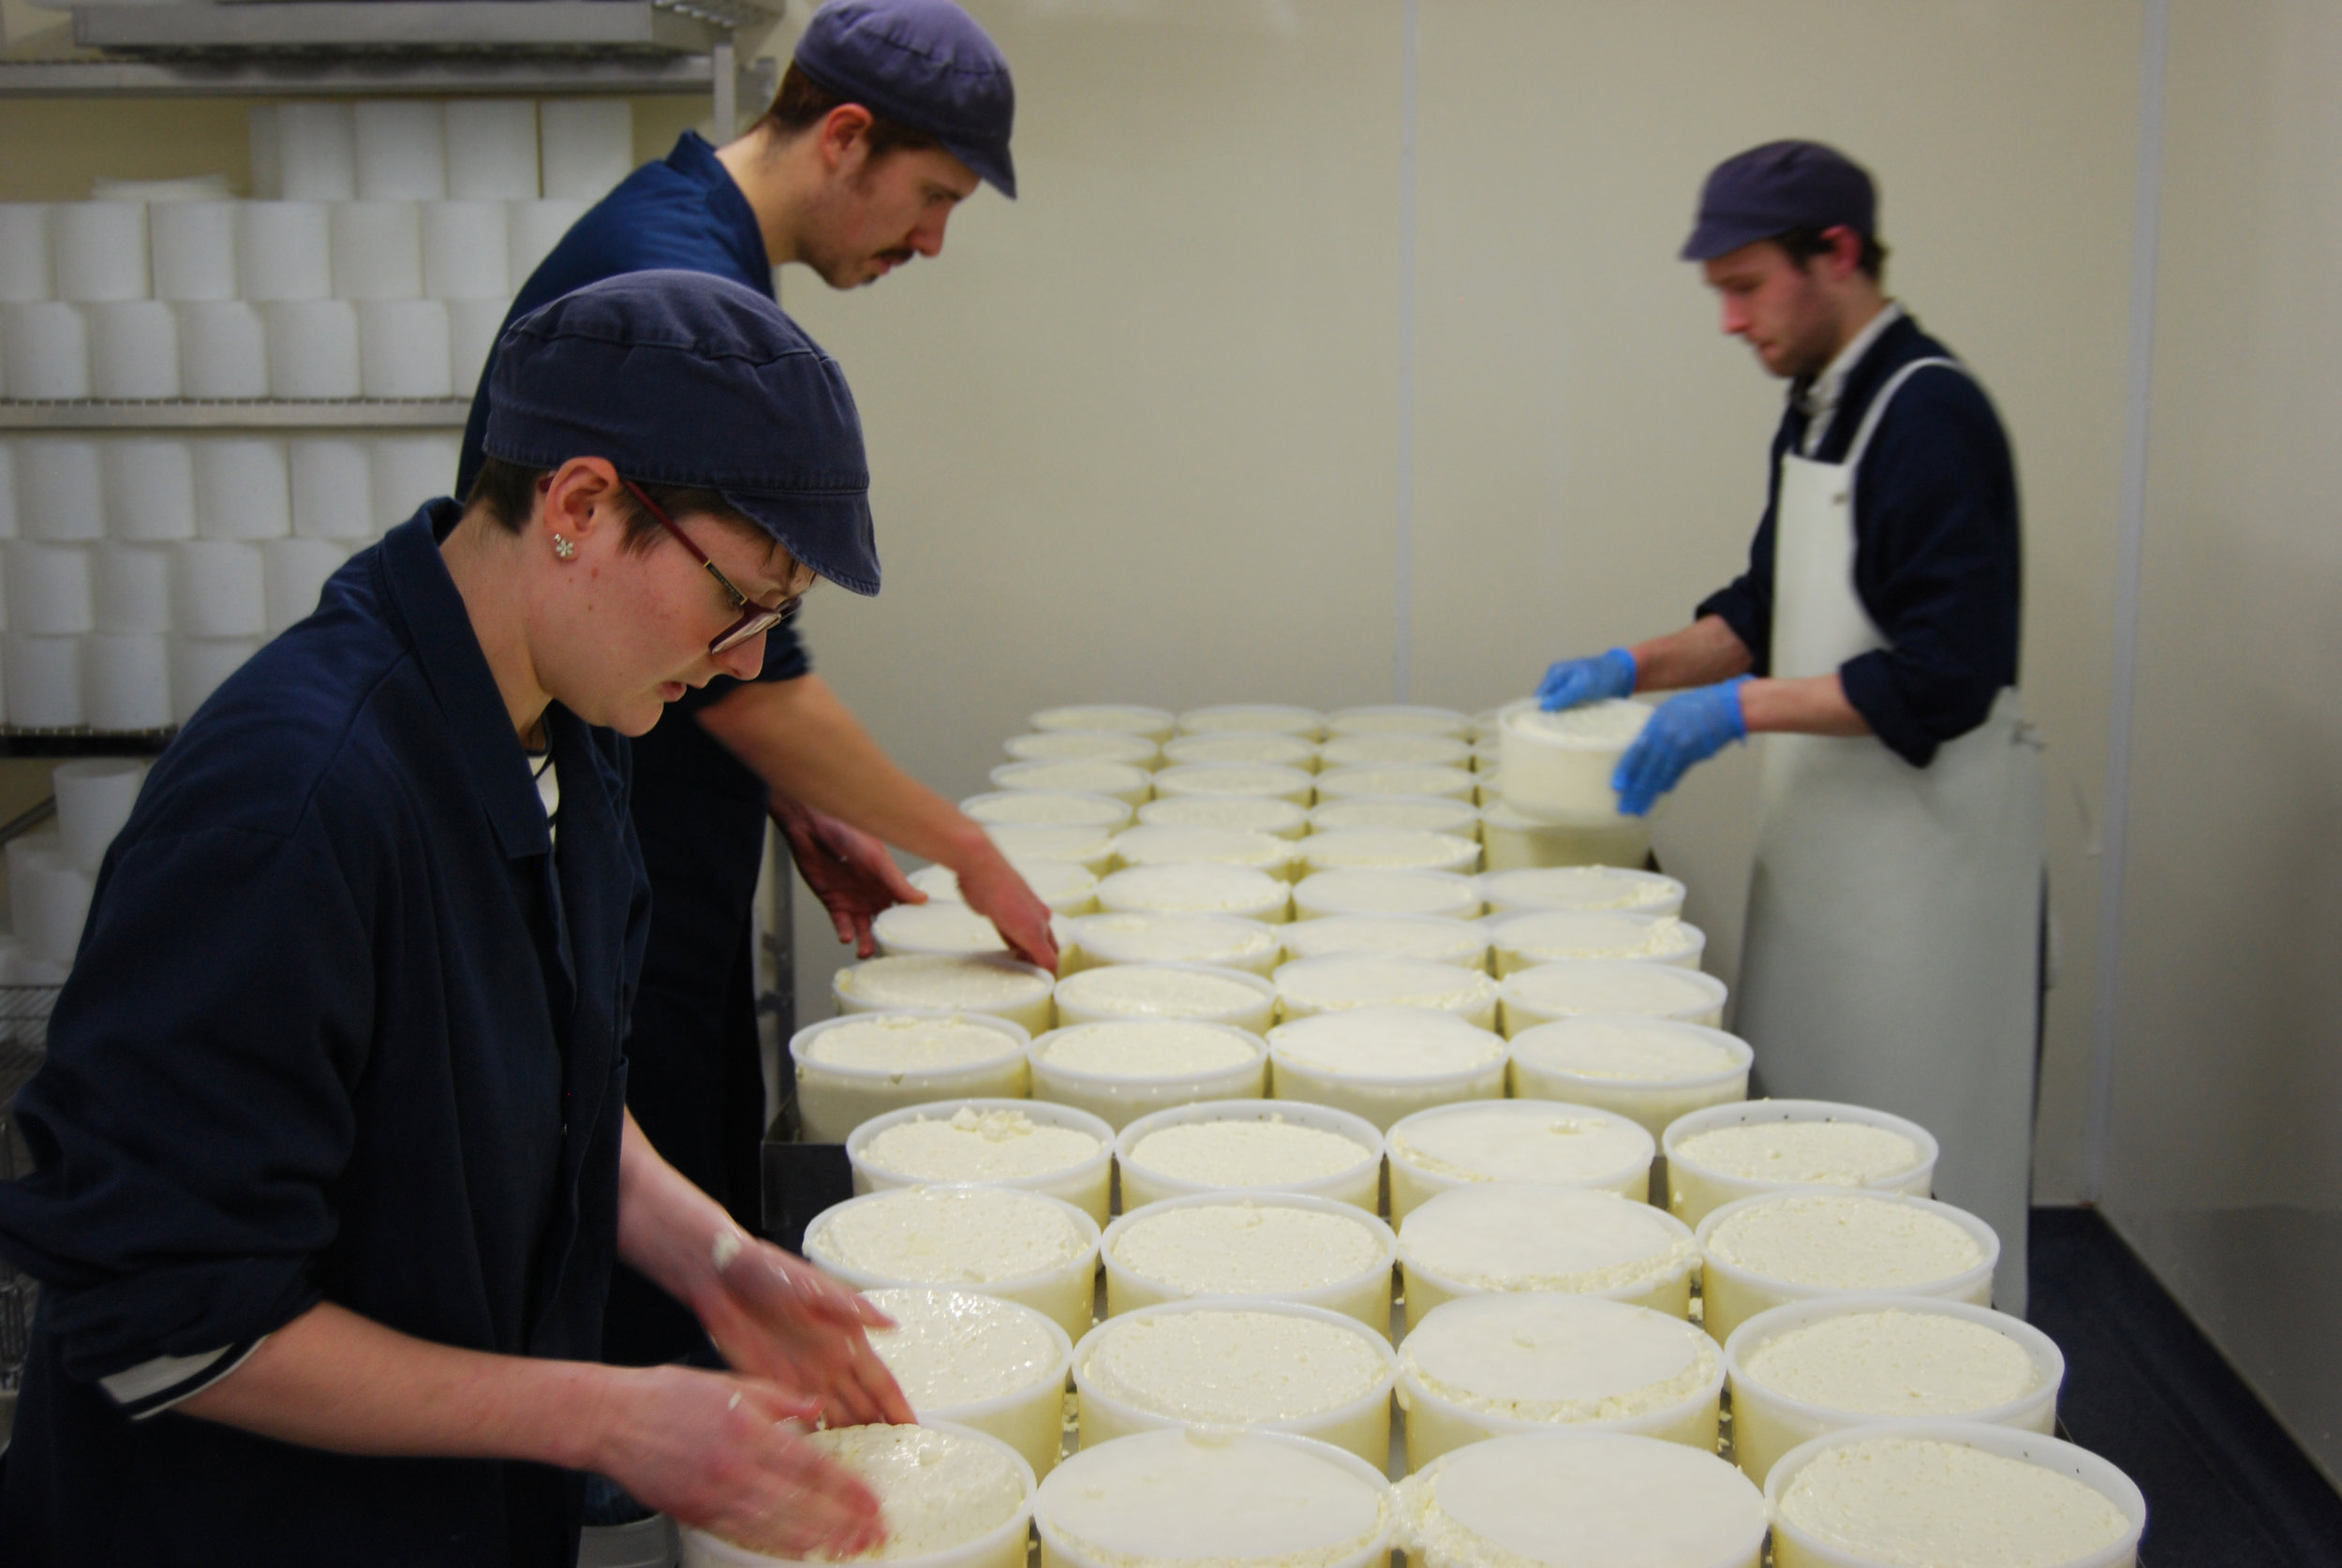 Turning the new cheeses